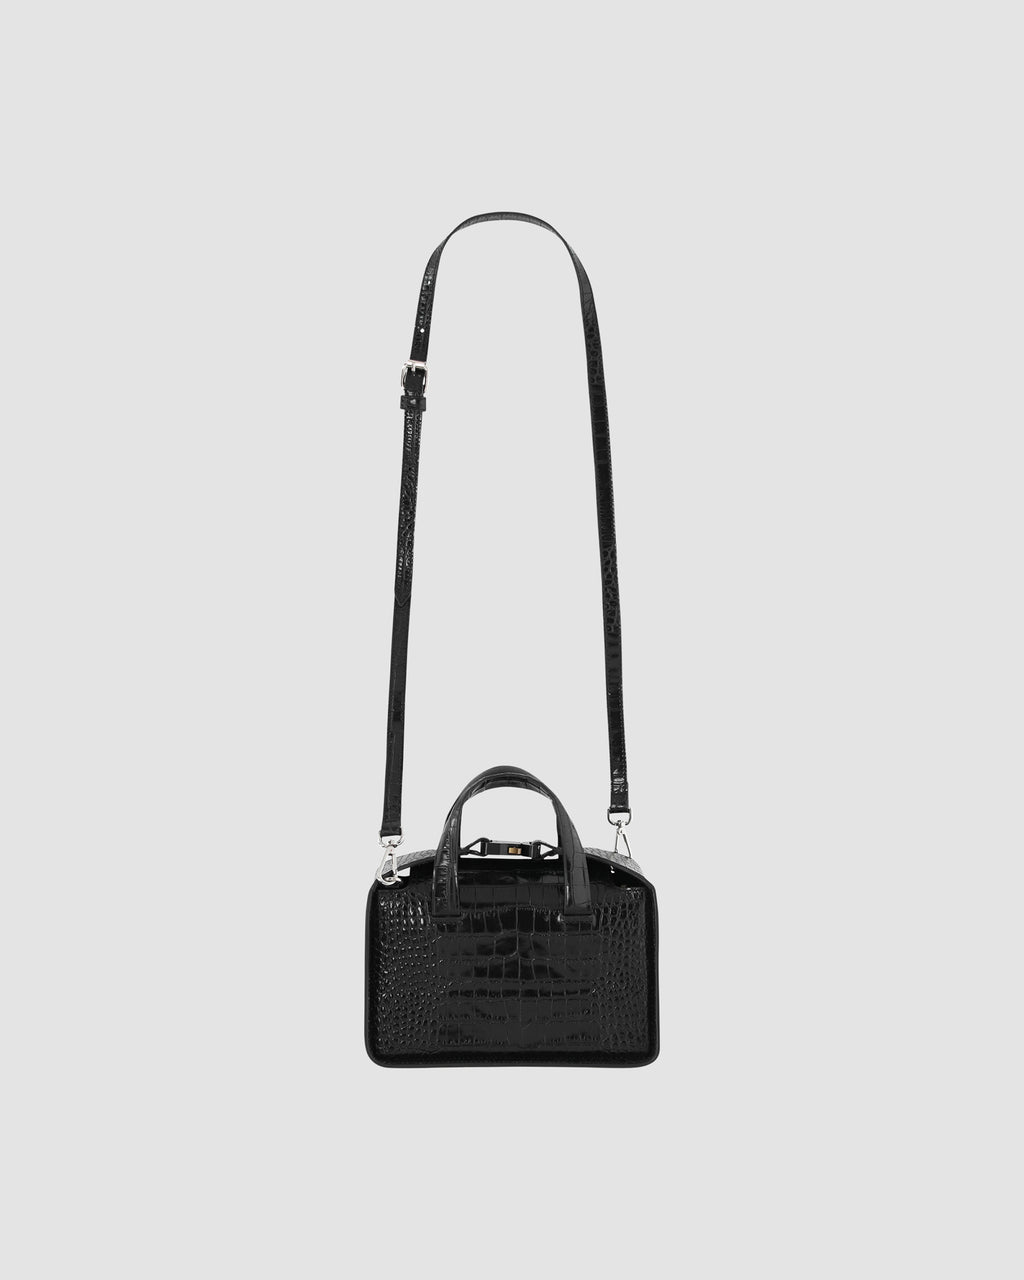 1017 ALYX 9SM | BRIE BAG | Bag | Accessories, Bag Online, Bags, BLACK, Google Shopping, HAND BAGS, S20, SS20, Woman, WOMEN